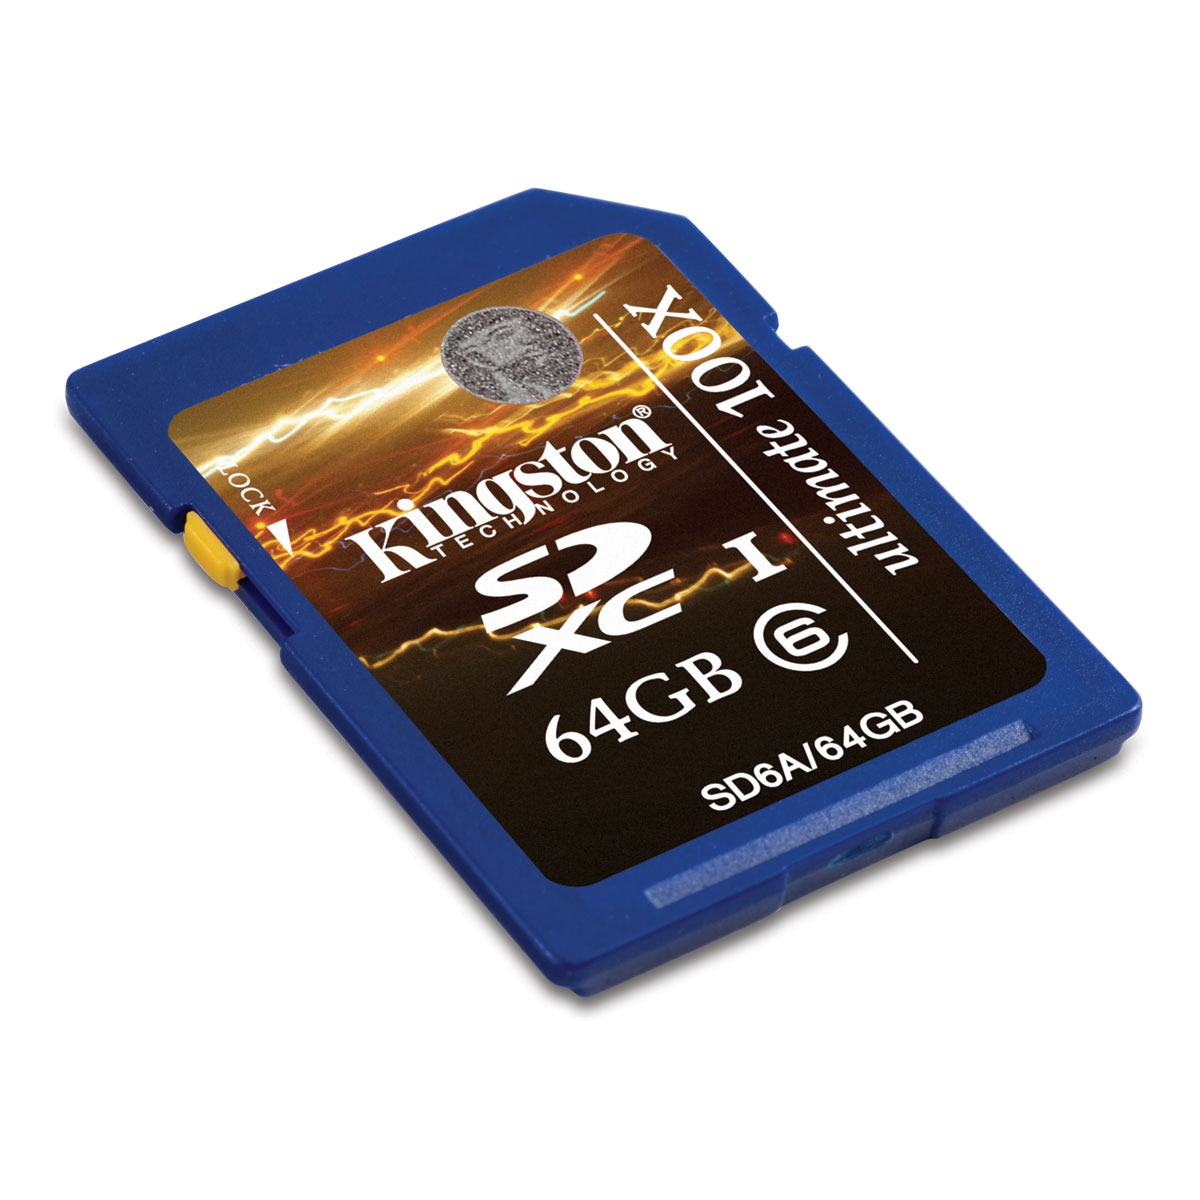 Carte mémoire Kingston SDXC Class 6 Ultimate 64 GB Kingston SDXC Ultimate 64 Go - Class 6 (garantie 10 ans par Kingston)